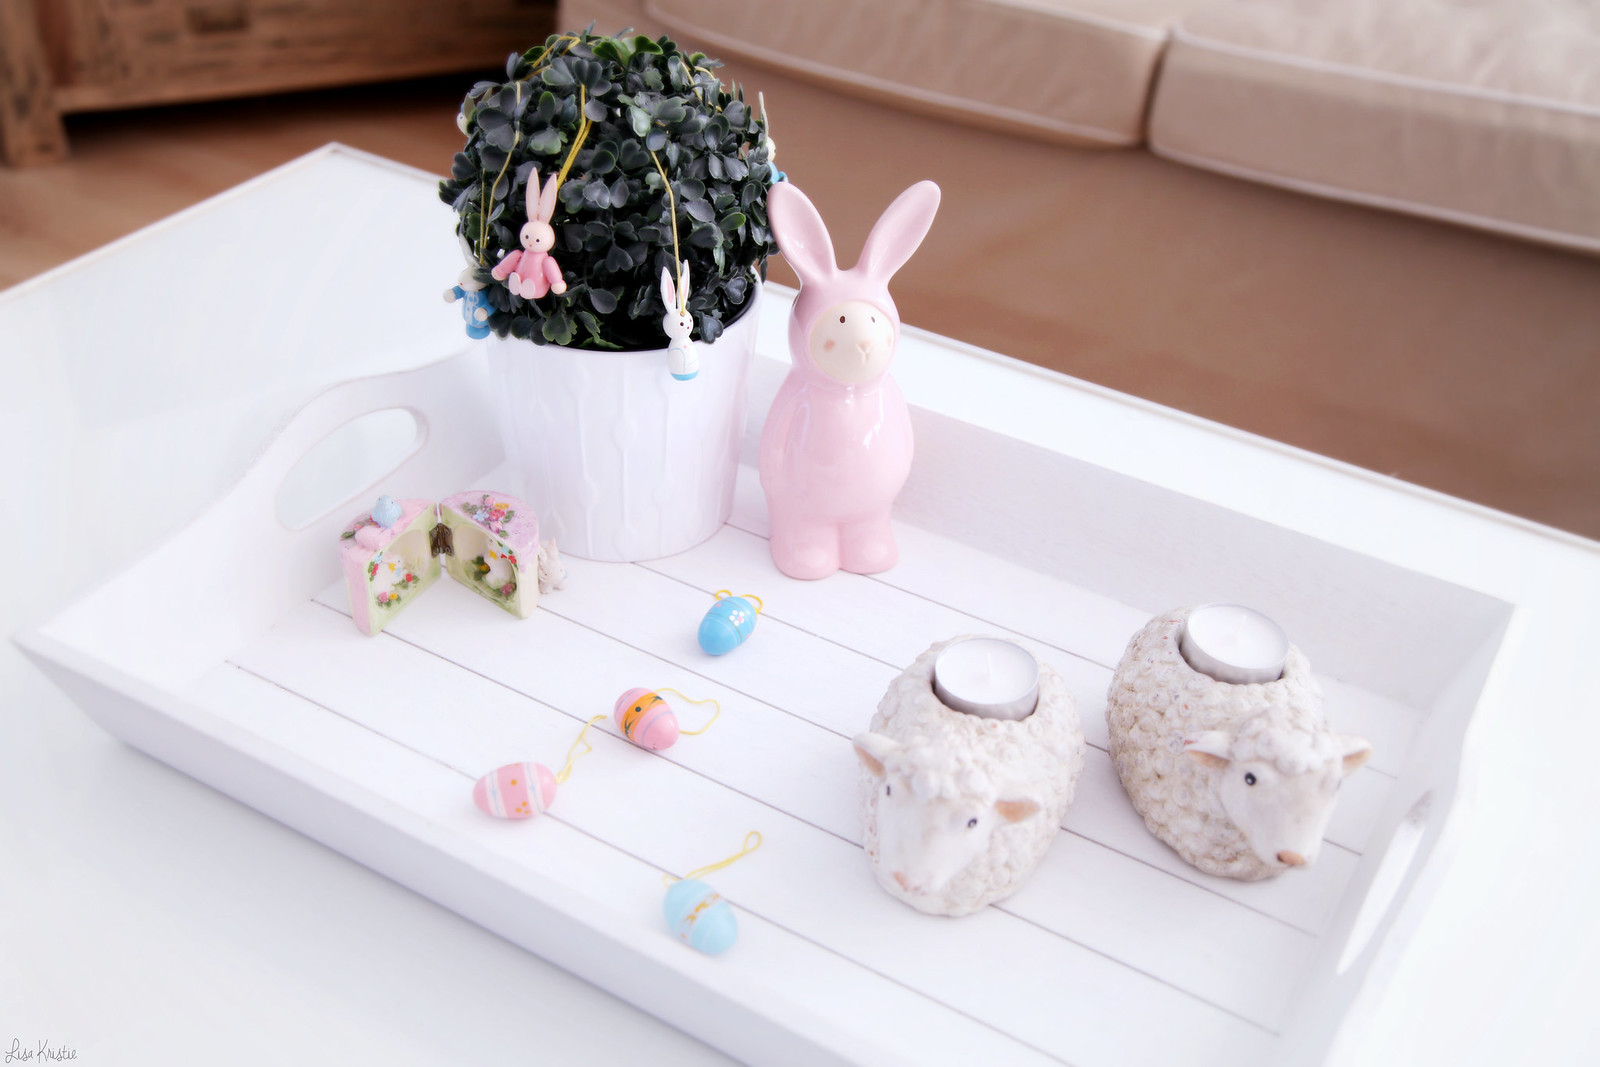 Easter home decoration living room white wooden trey tray shabby chic pink girly decor interior pastels sheep candle holders ikea pot eggs bunny vintage new 2016